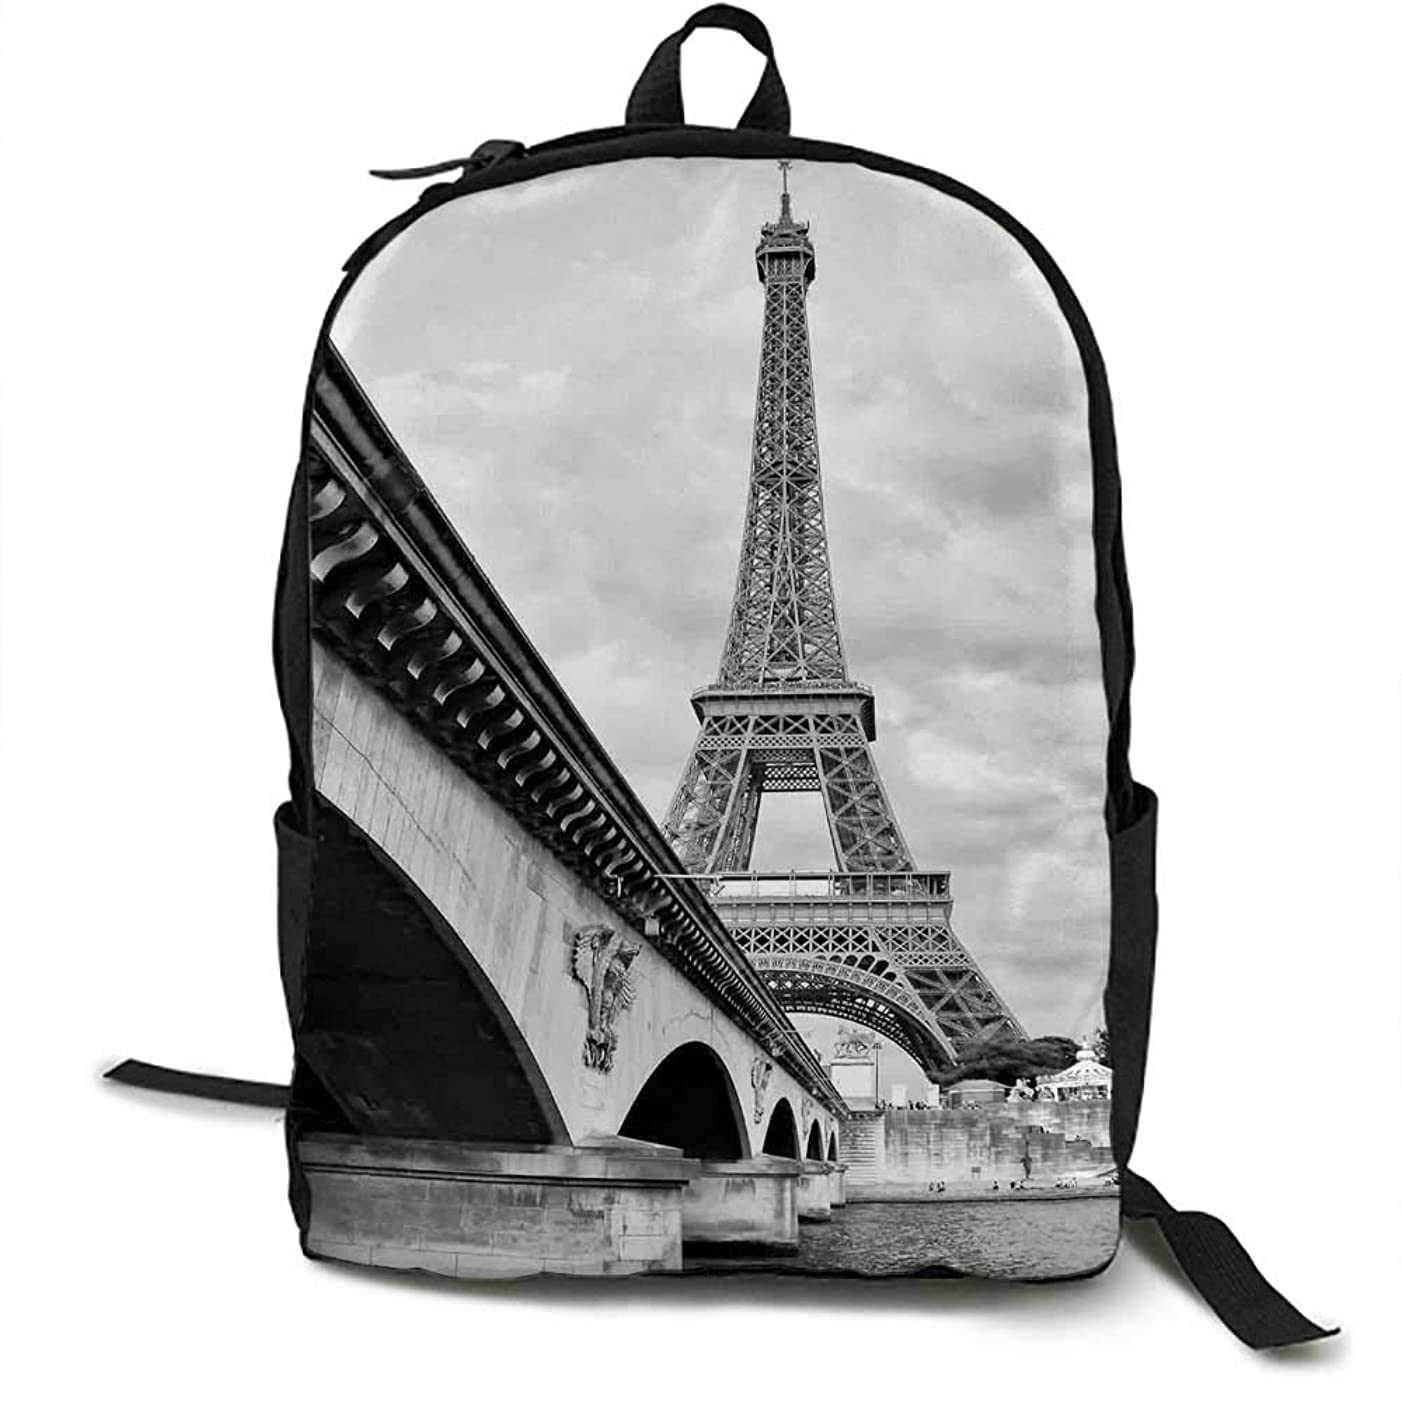 Eiffel Tower Unisex classic backpack Eiffel Tower Cloudy Sky View from Seine River under Bridge Monochromic Art Suitable for 16-inch laptops 16.5 x 12.5 x 5.5 Inch Black White